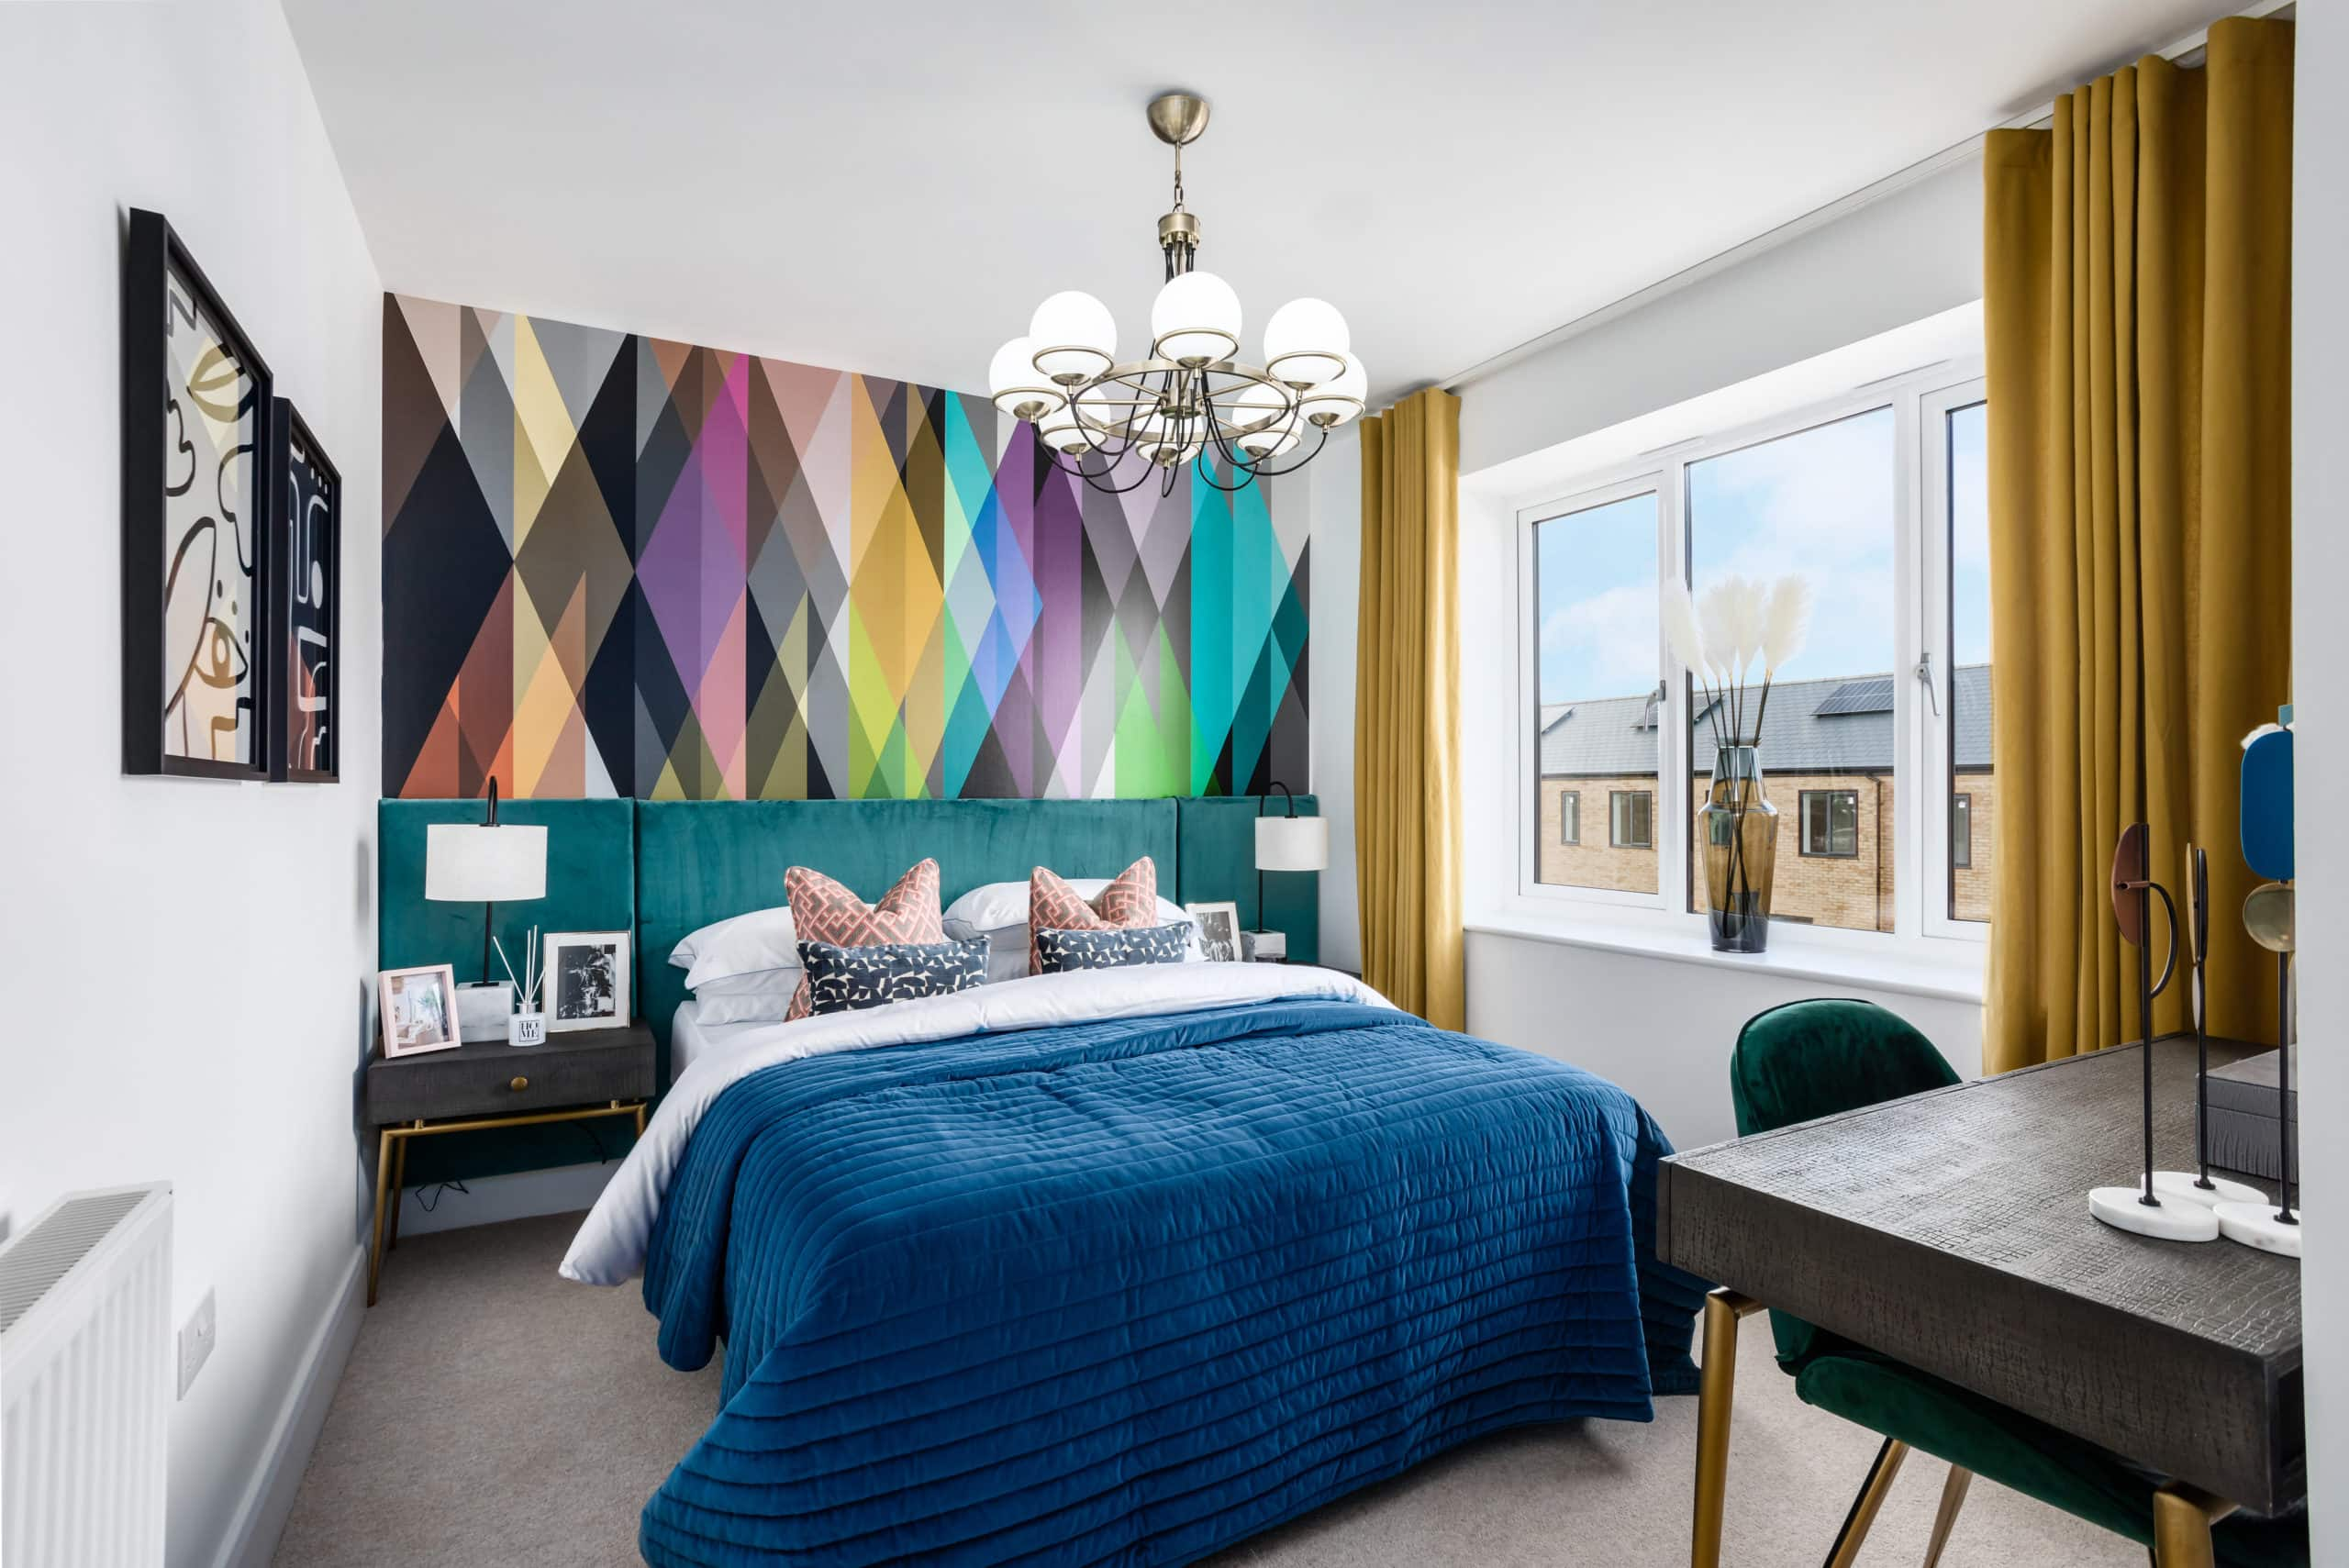 Bedroom one at Catalyst's The Printworks - Shared Ownership homes available on Share to Buy